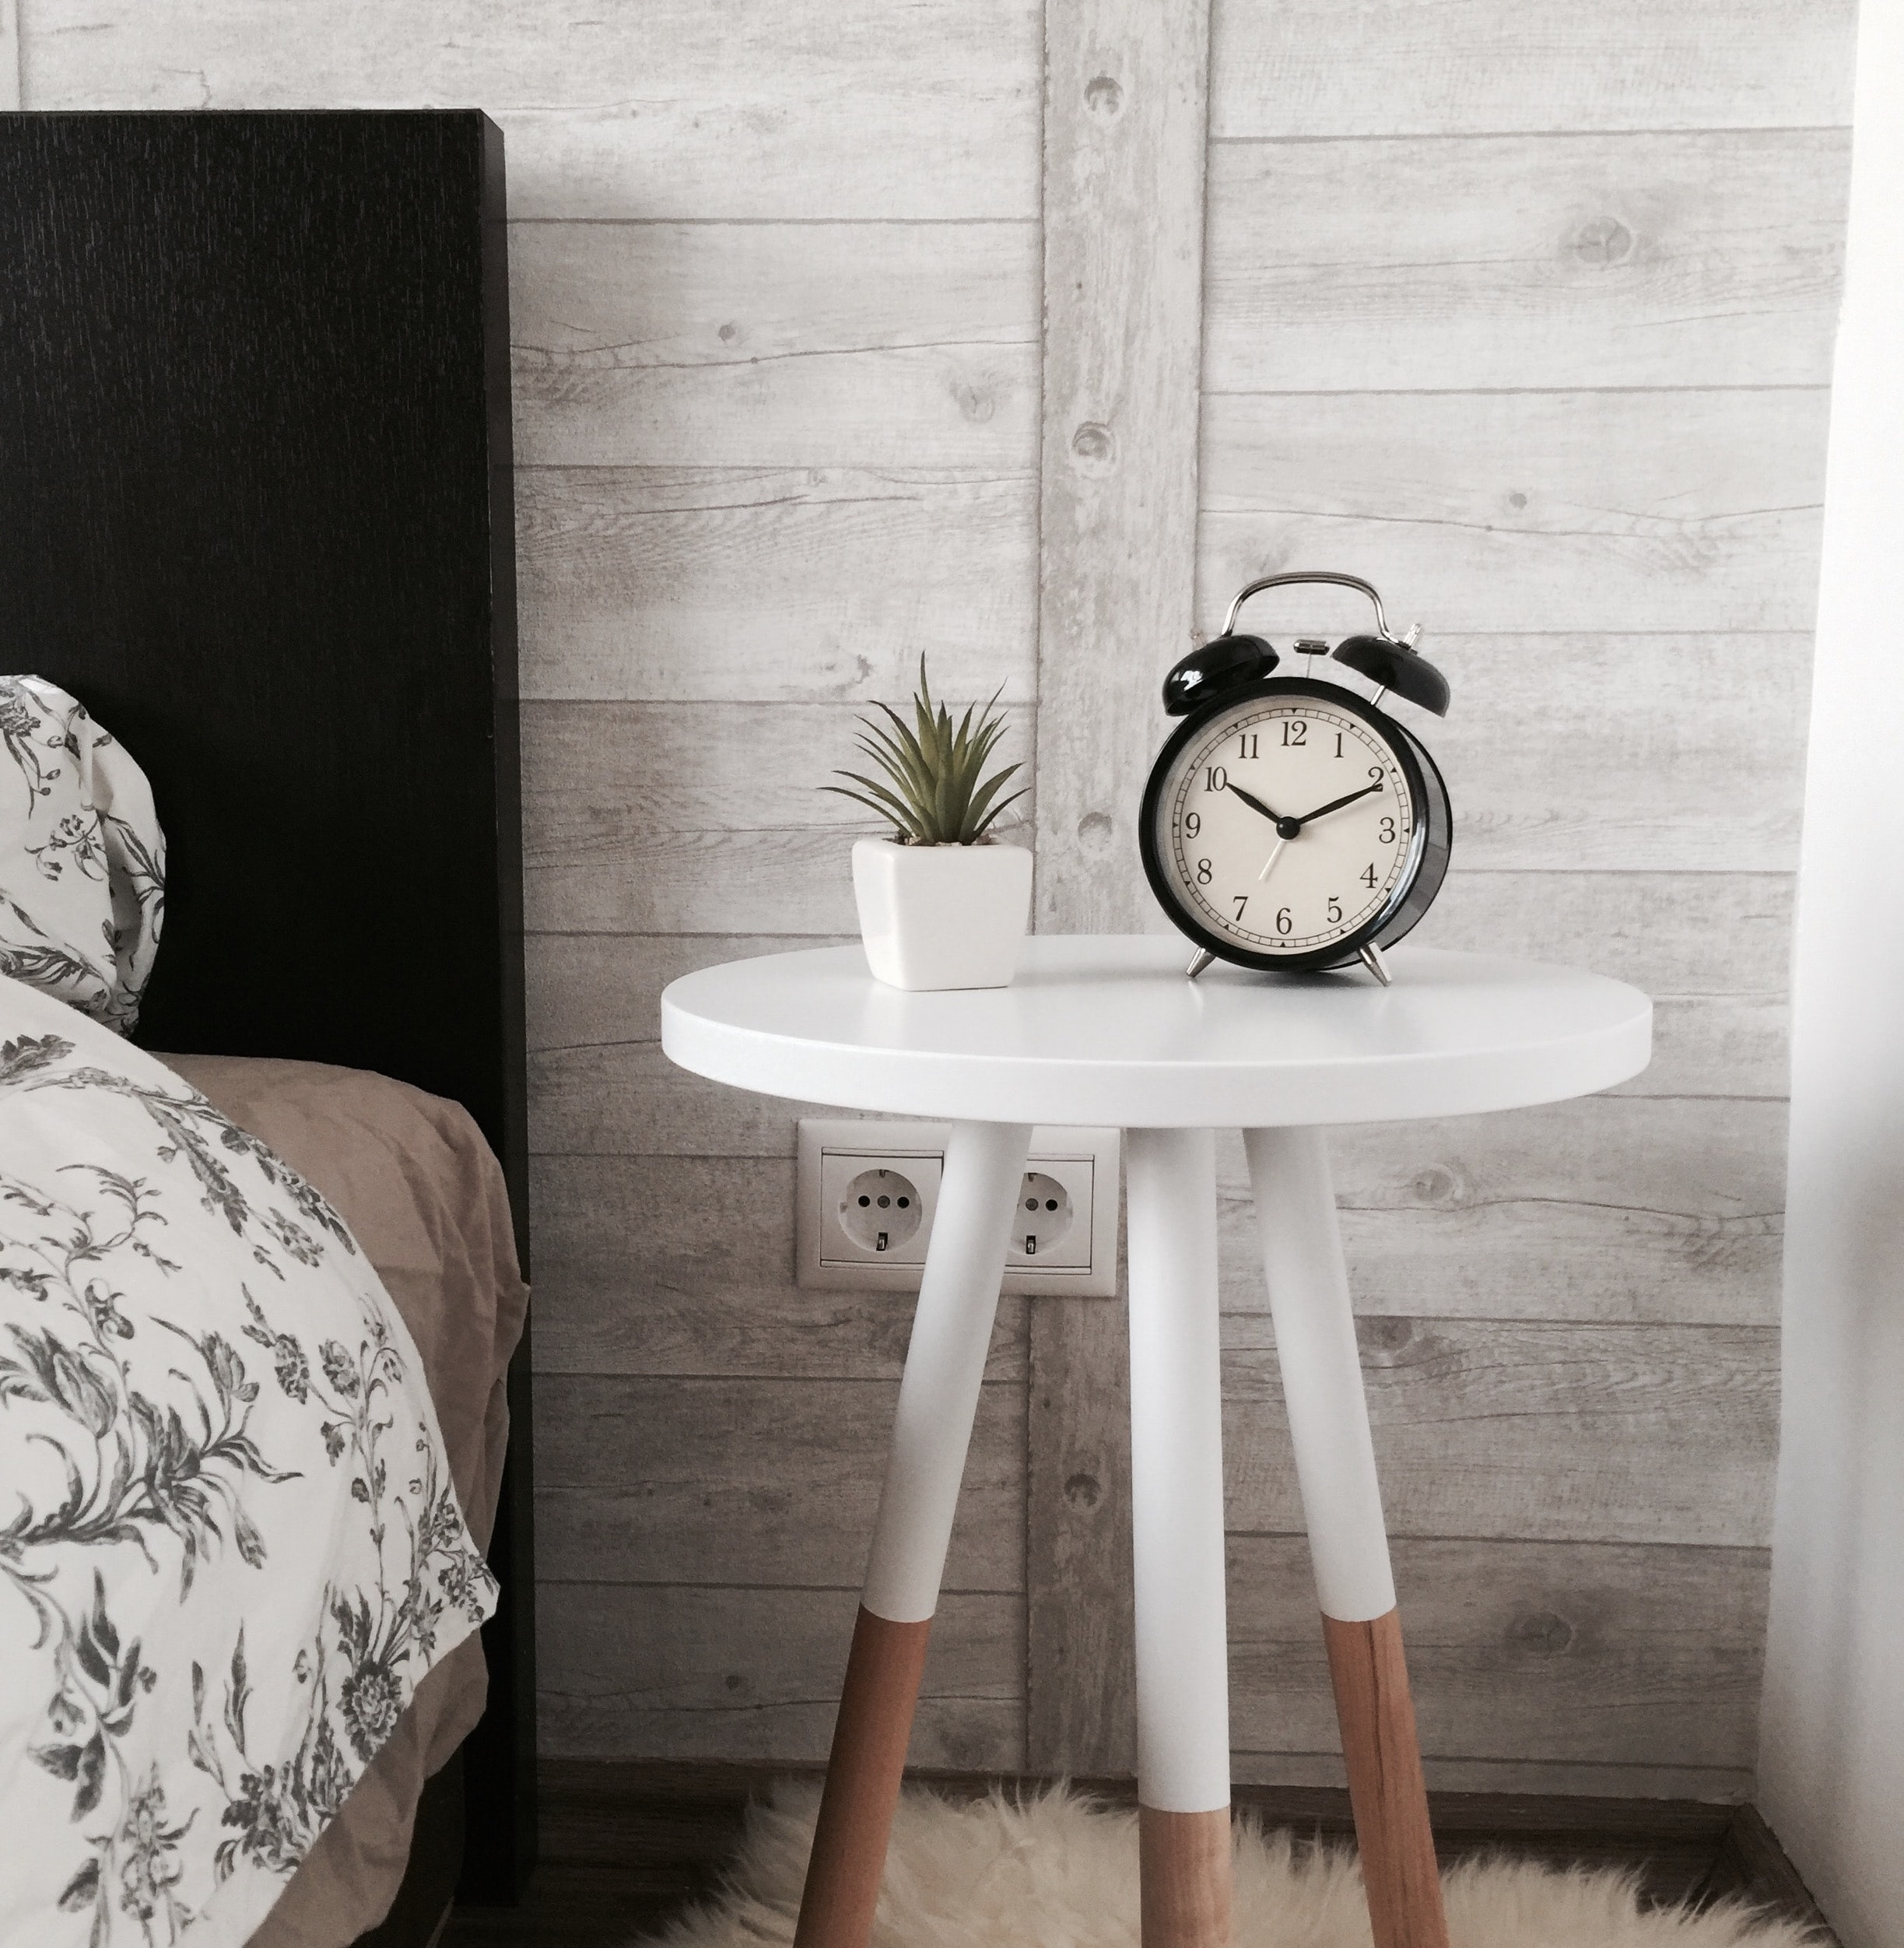 Alarm clock on a nightstand next to a bed